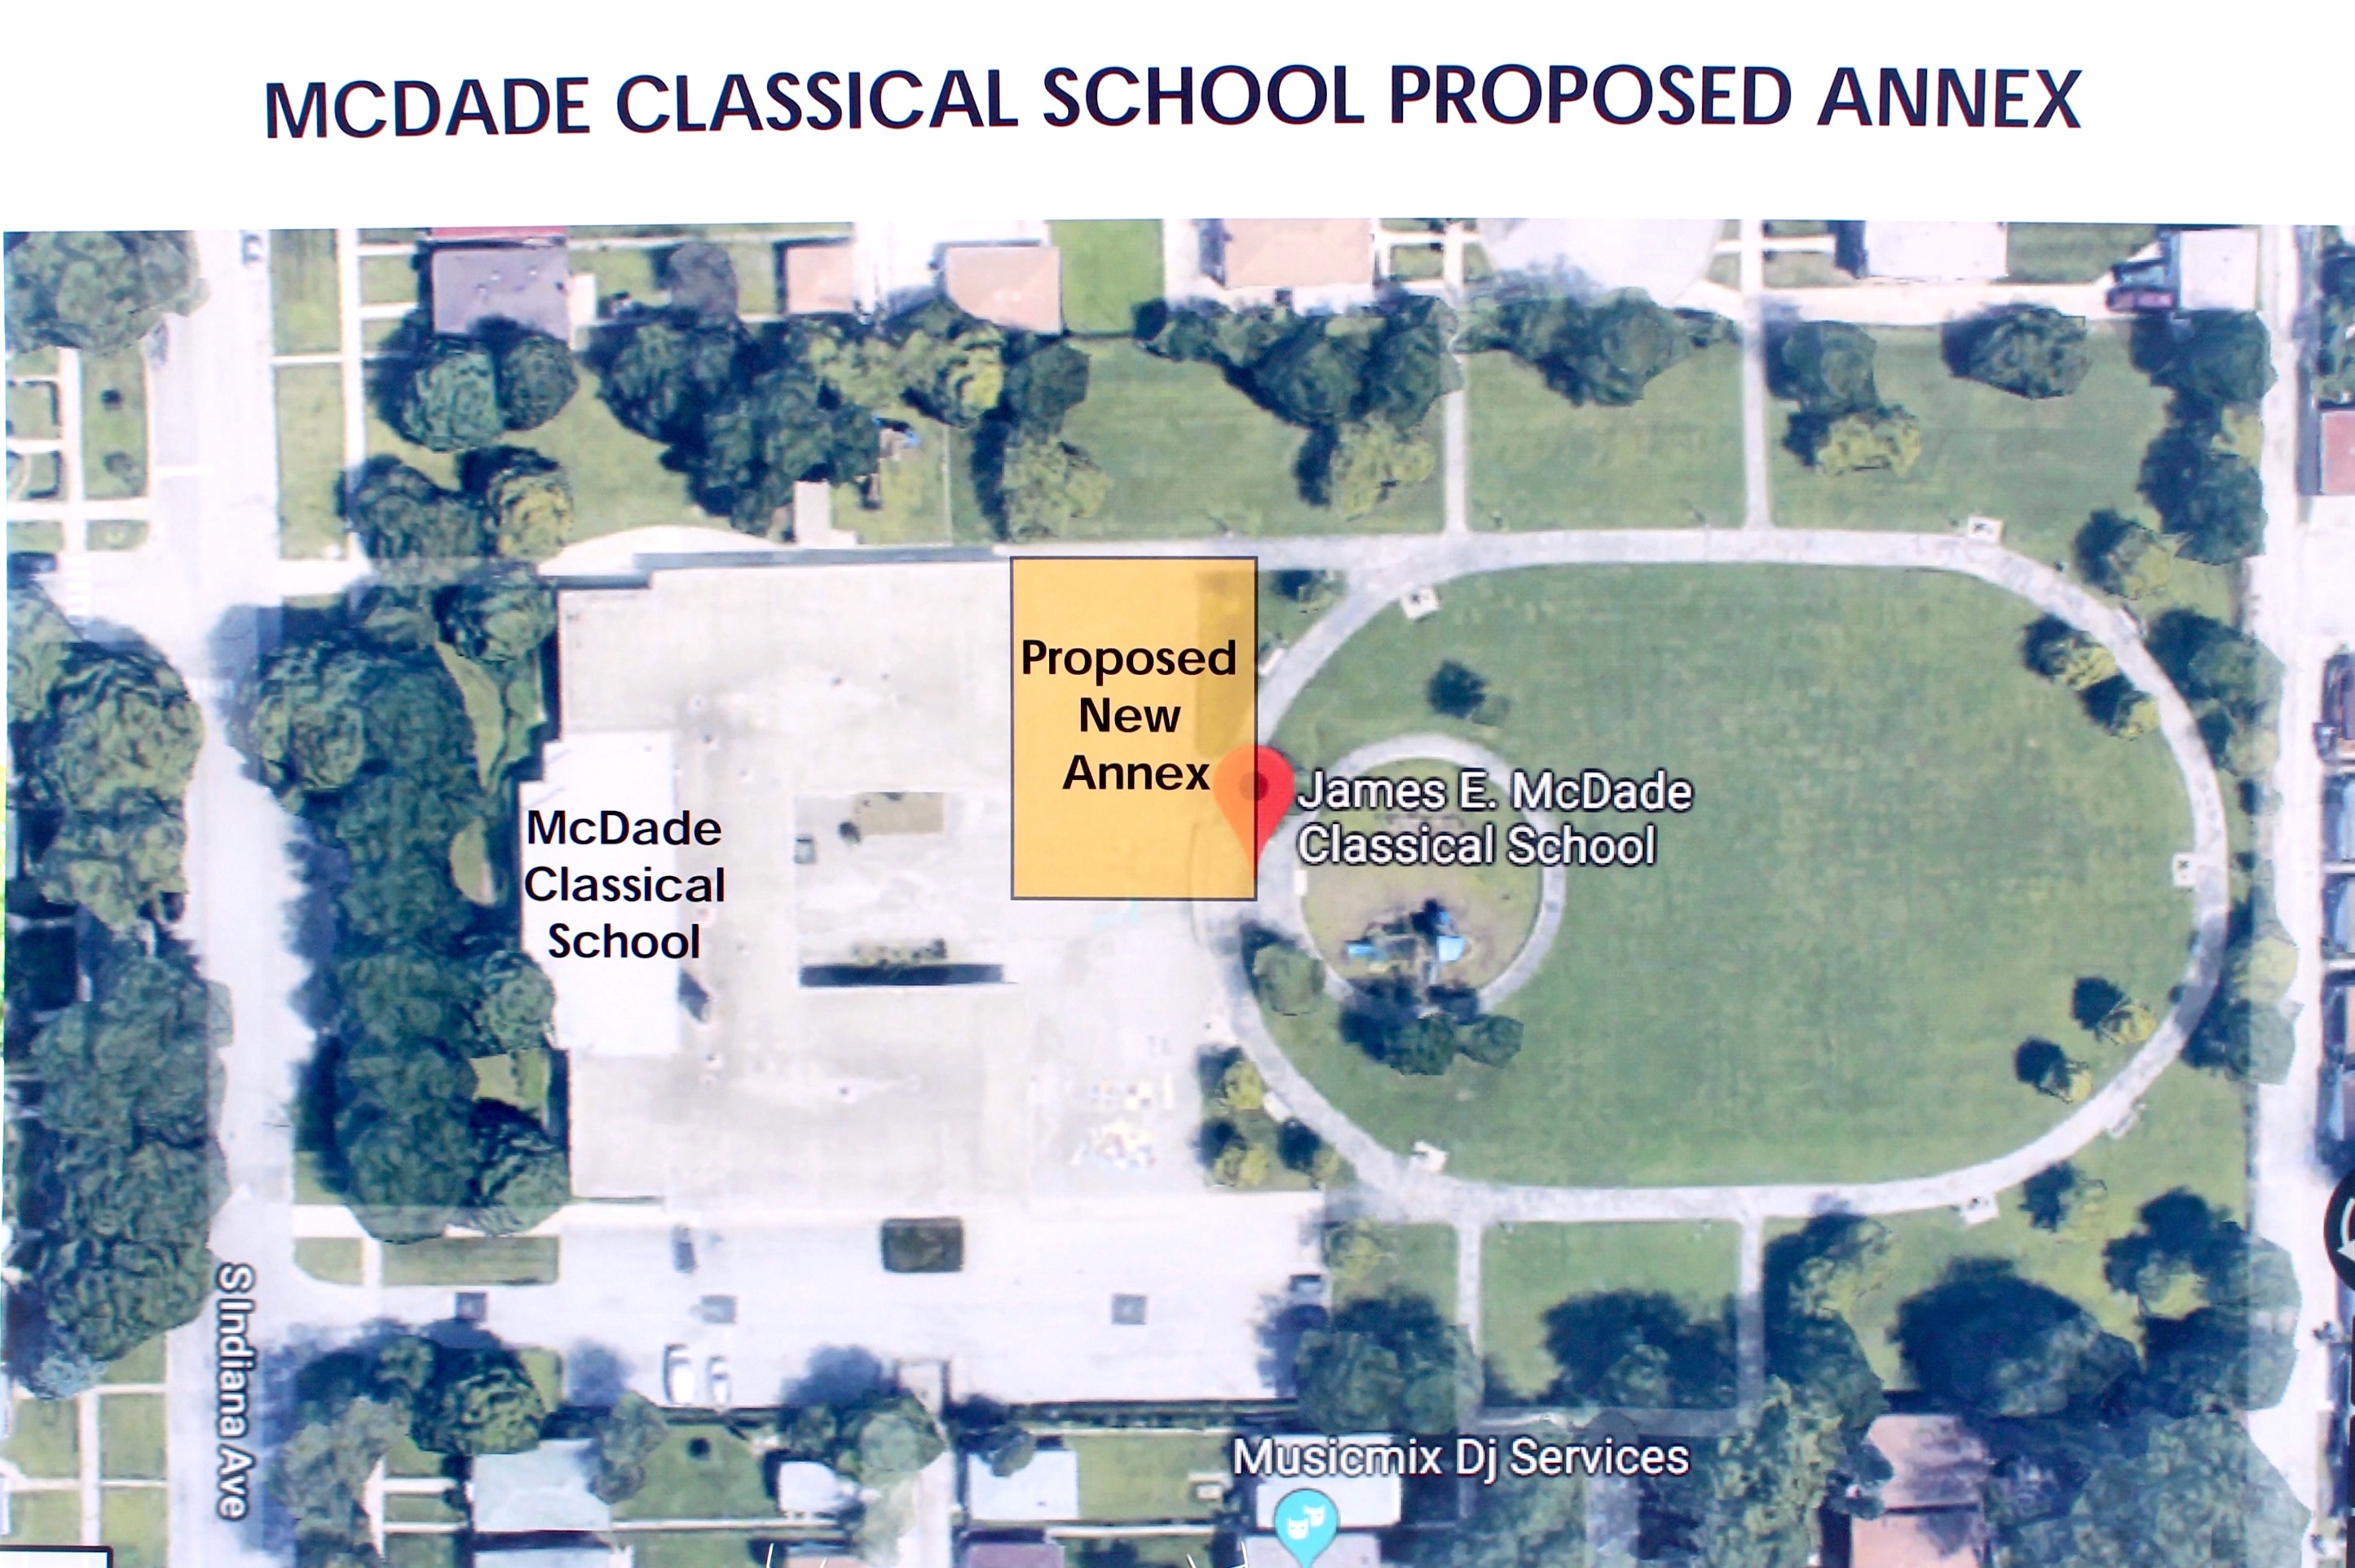 The district is expanding three classical schools, including McDade in Chatham